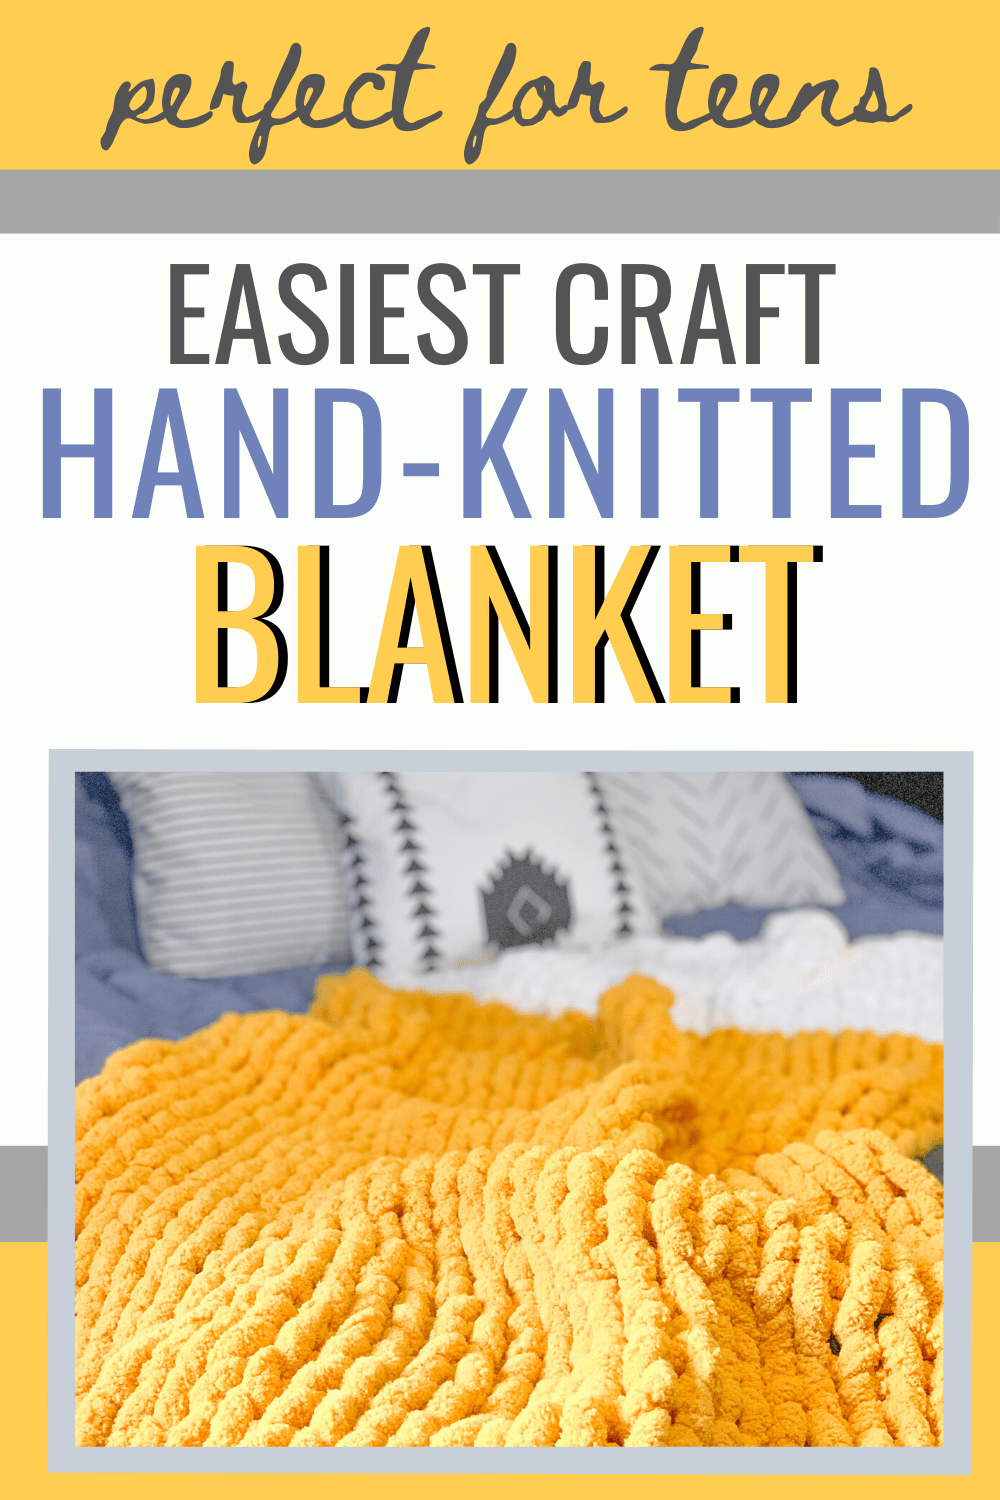 hand-knit a blanket craft